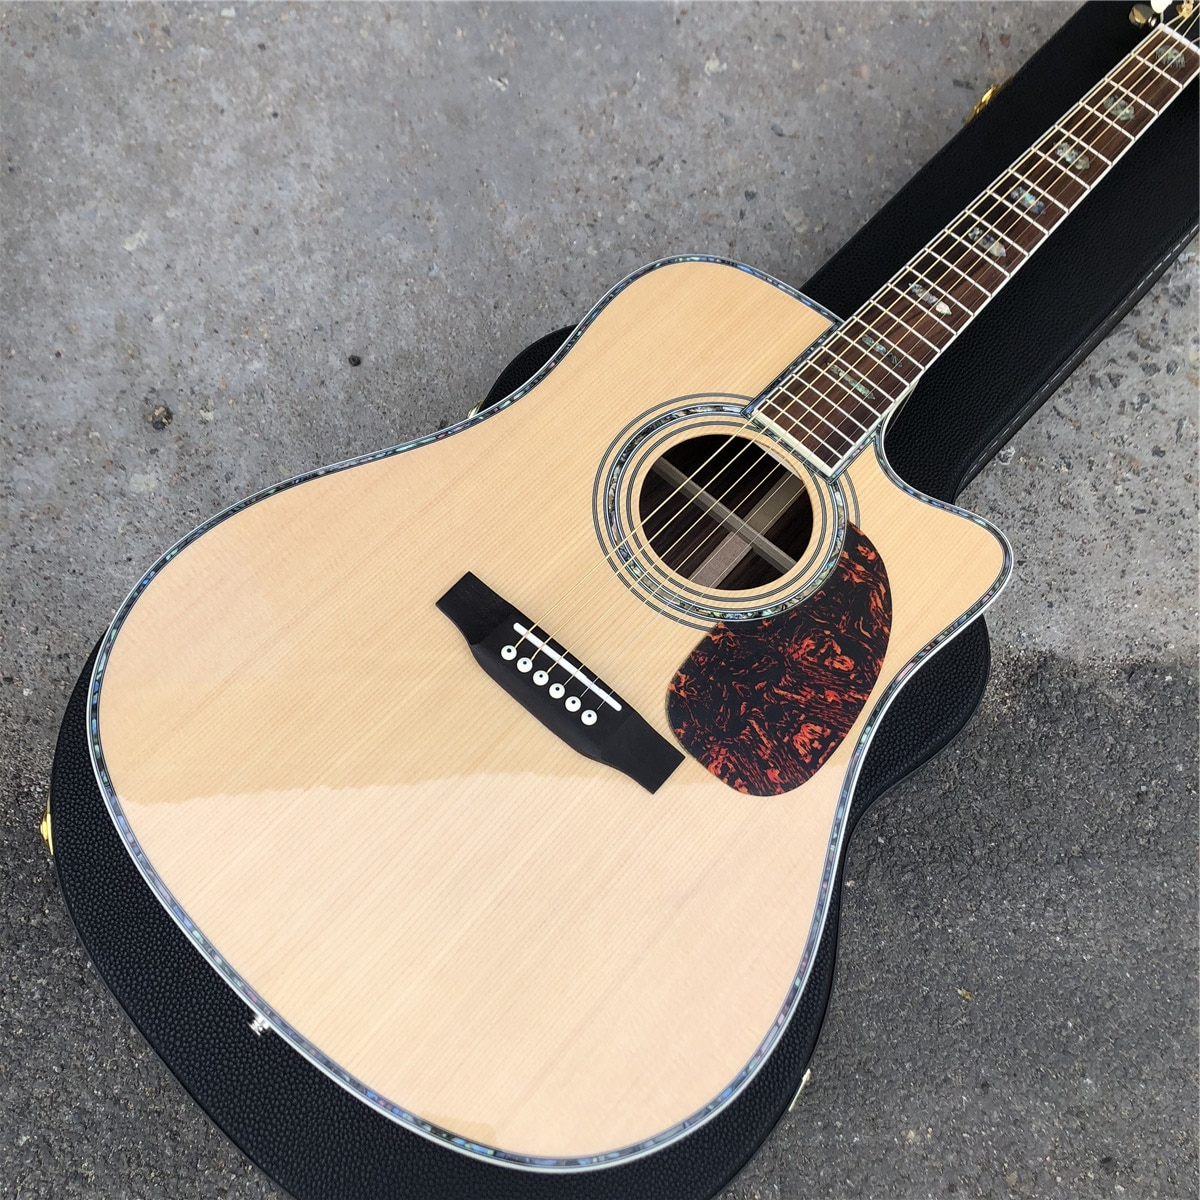 Cutaway D style Solid Spruce Acoustic Guitar,Rosewood Back and Sides 6 strings Guitarra,Real Photos